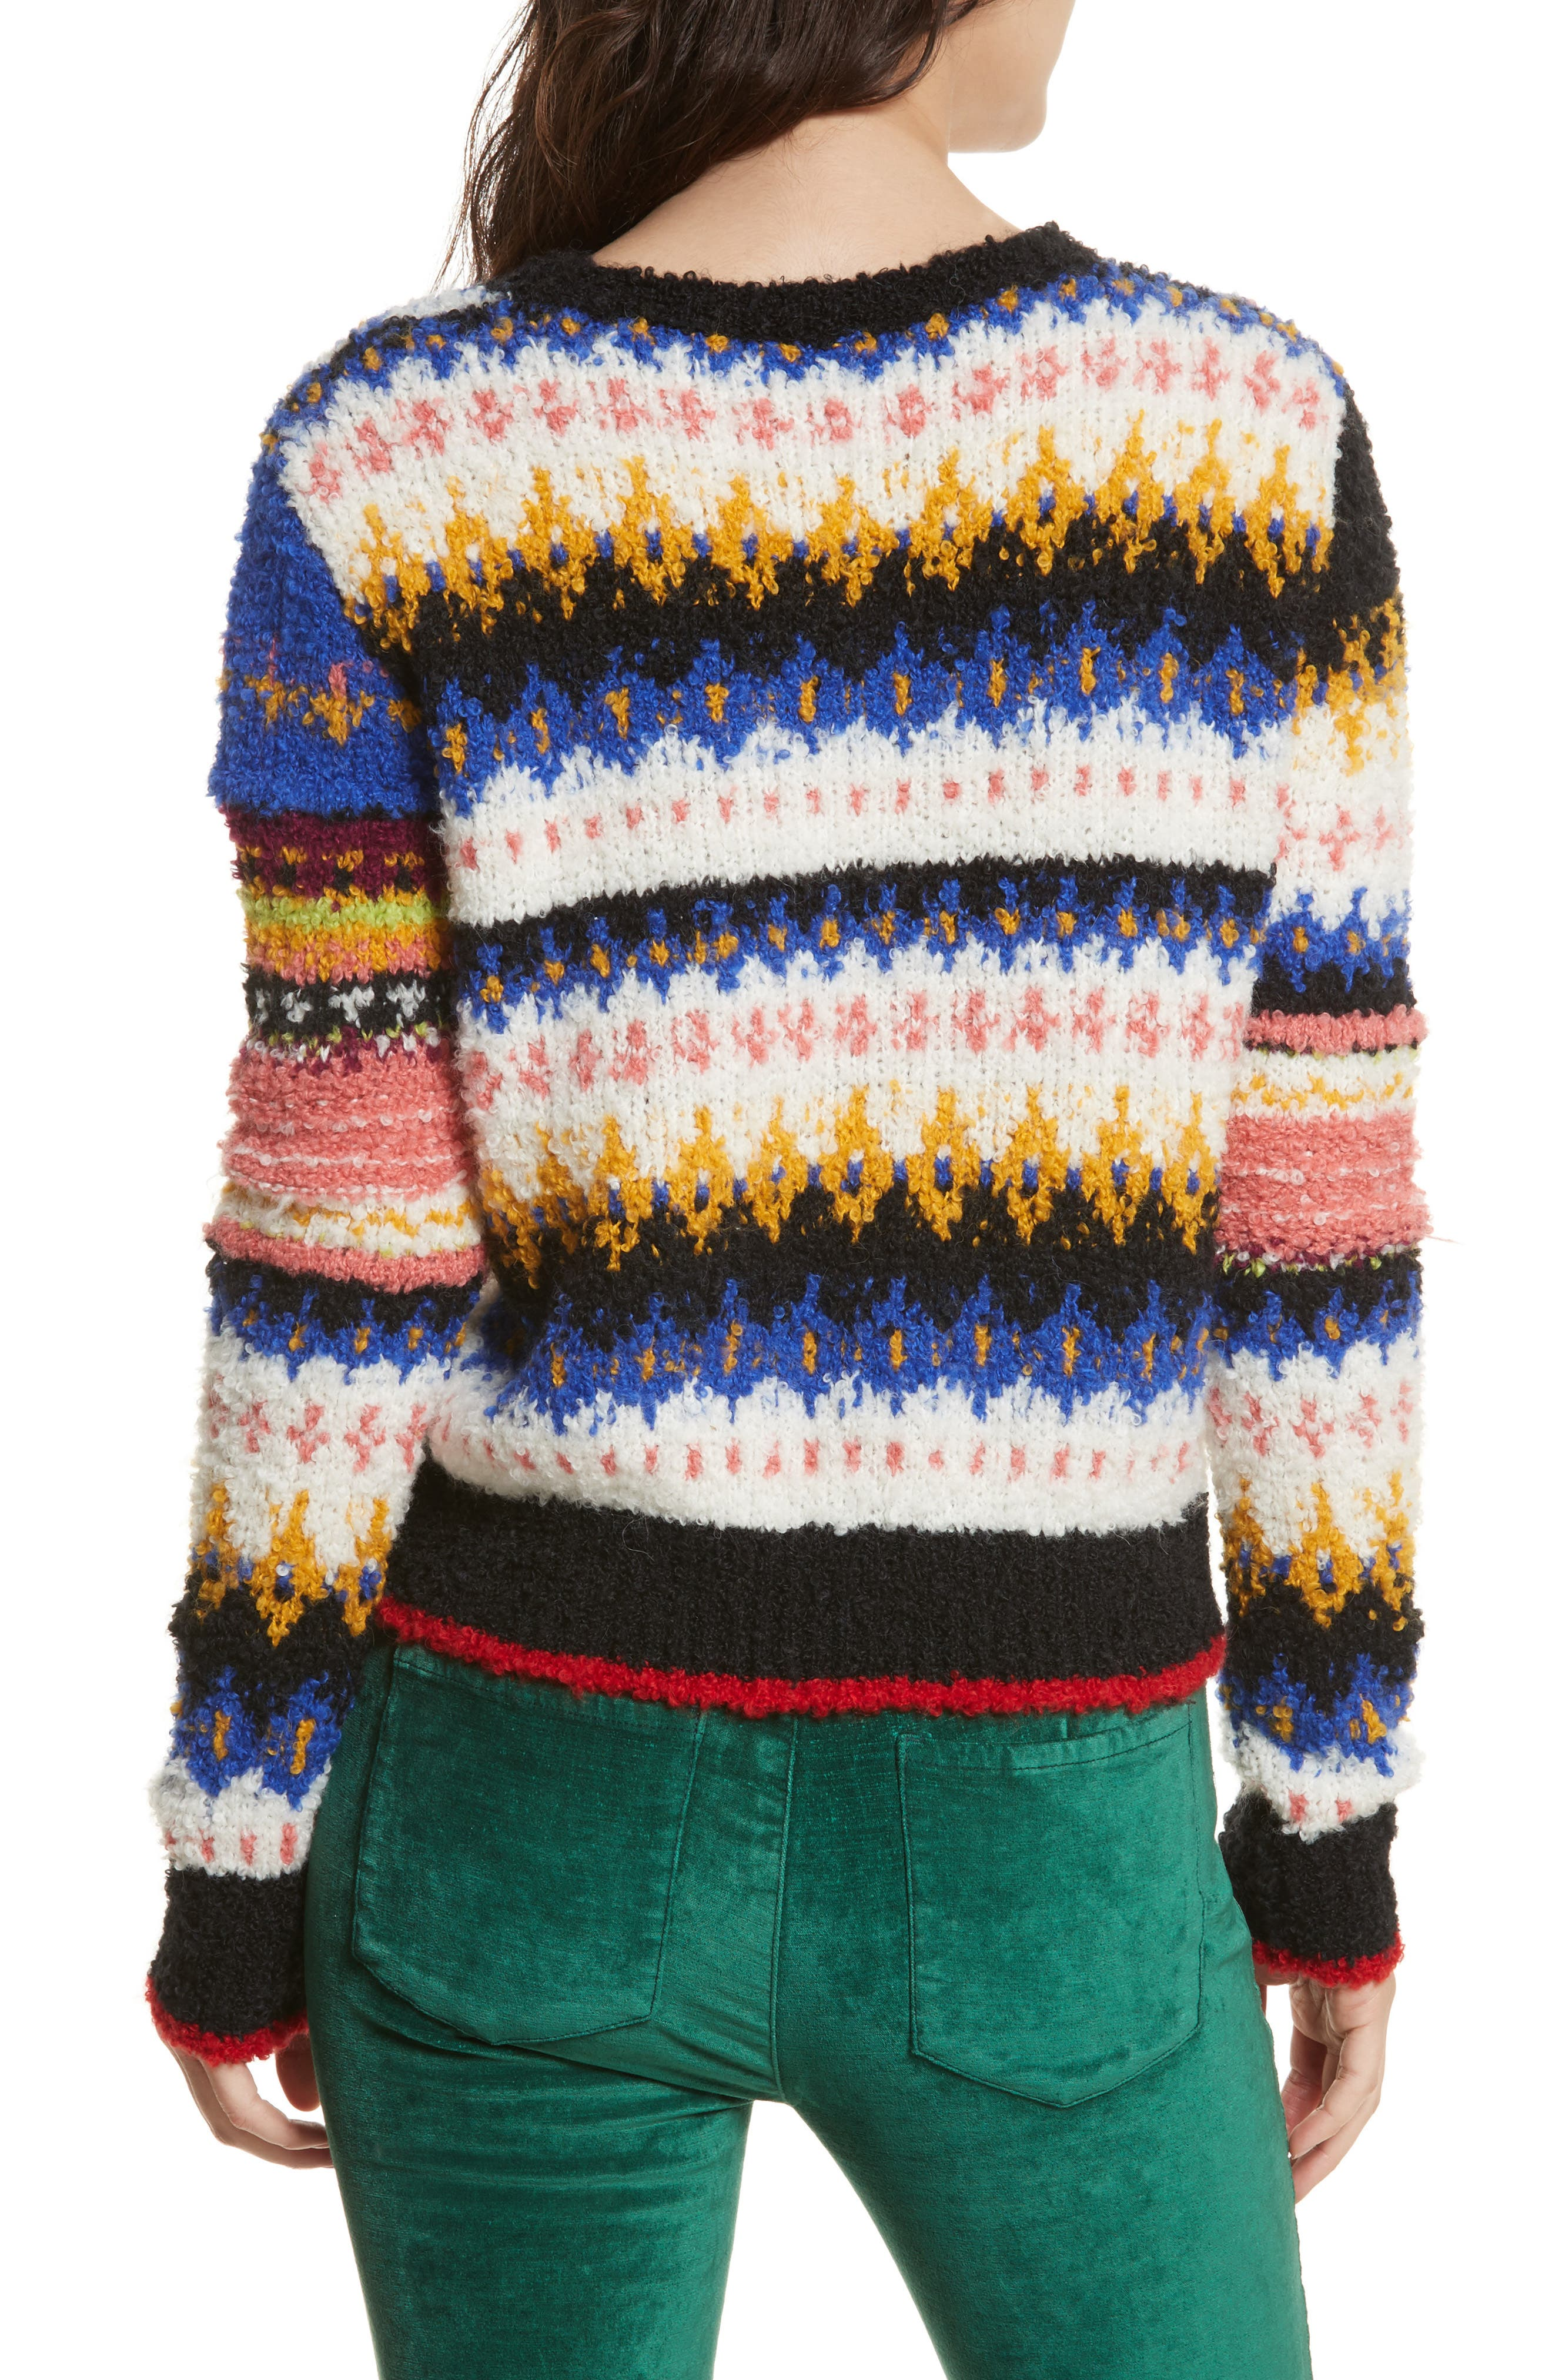 Best Day Ever Sweater,                             Alternate thumbnail 2, color,                             Multi